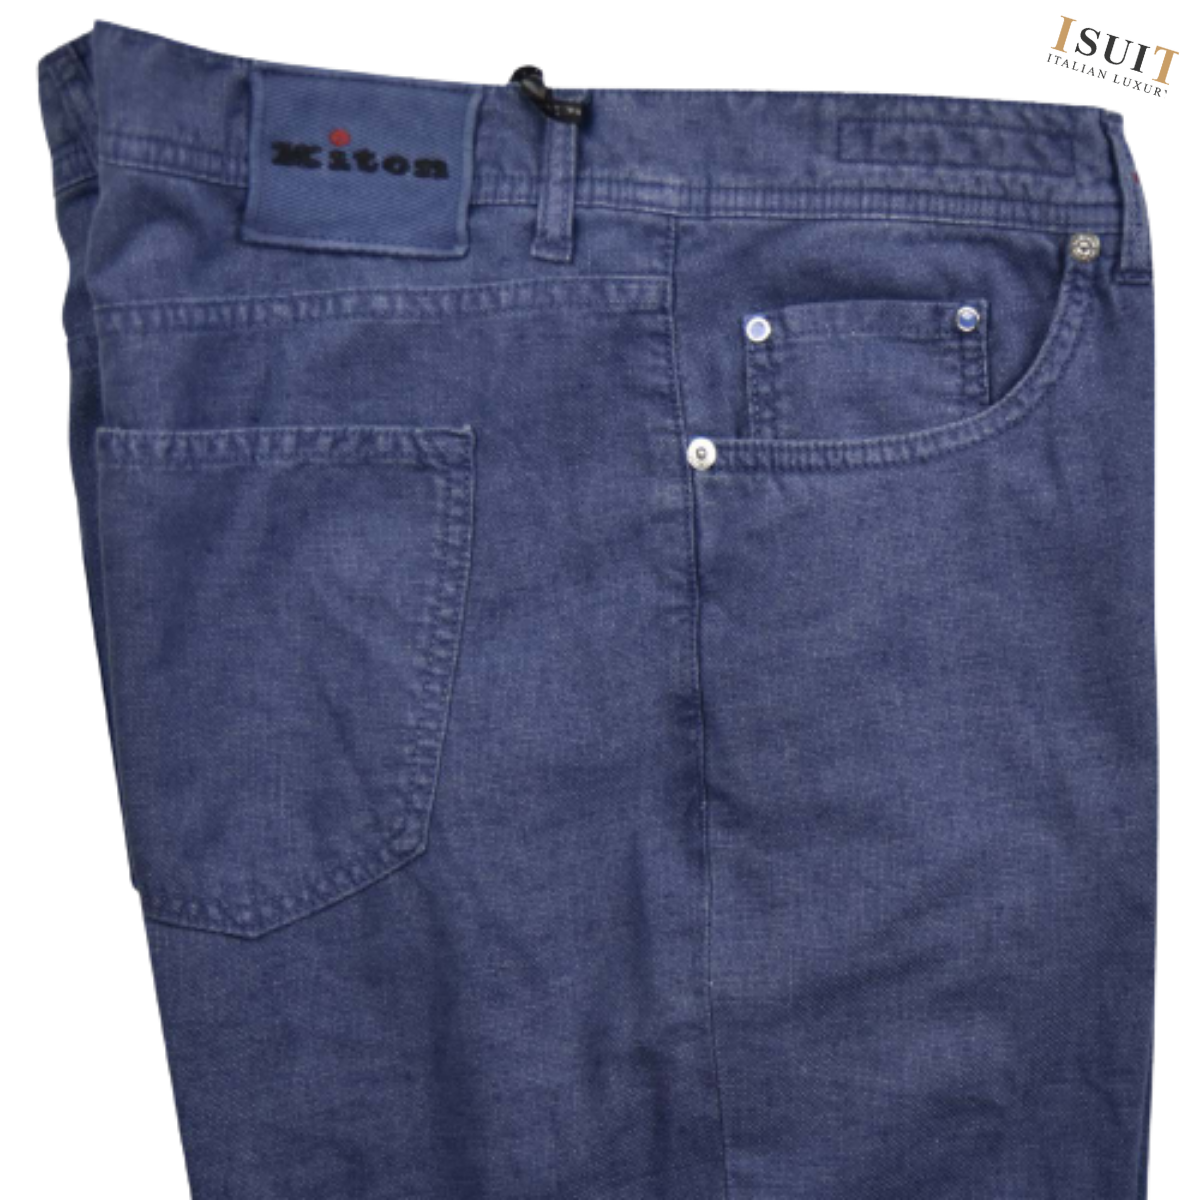 kiton suits available now at amazing prices at isuit (1).png